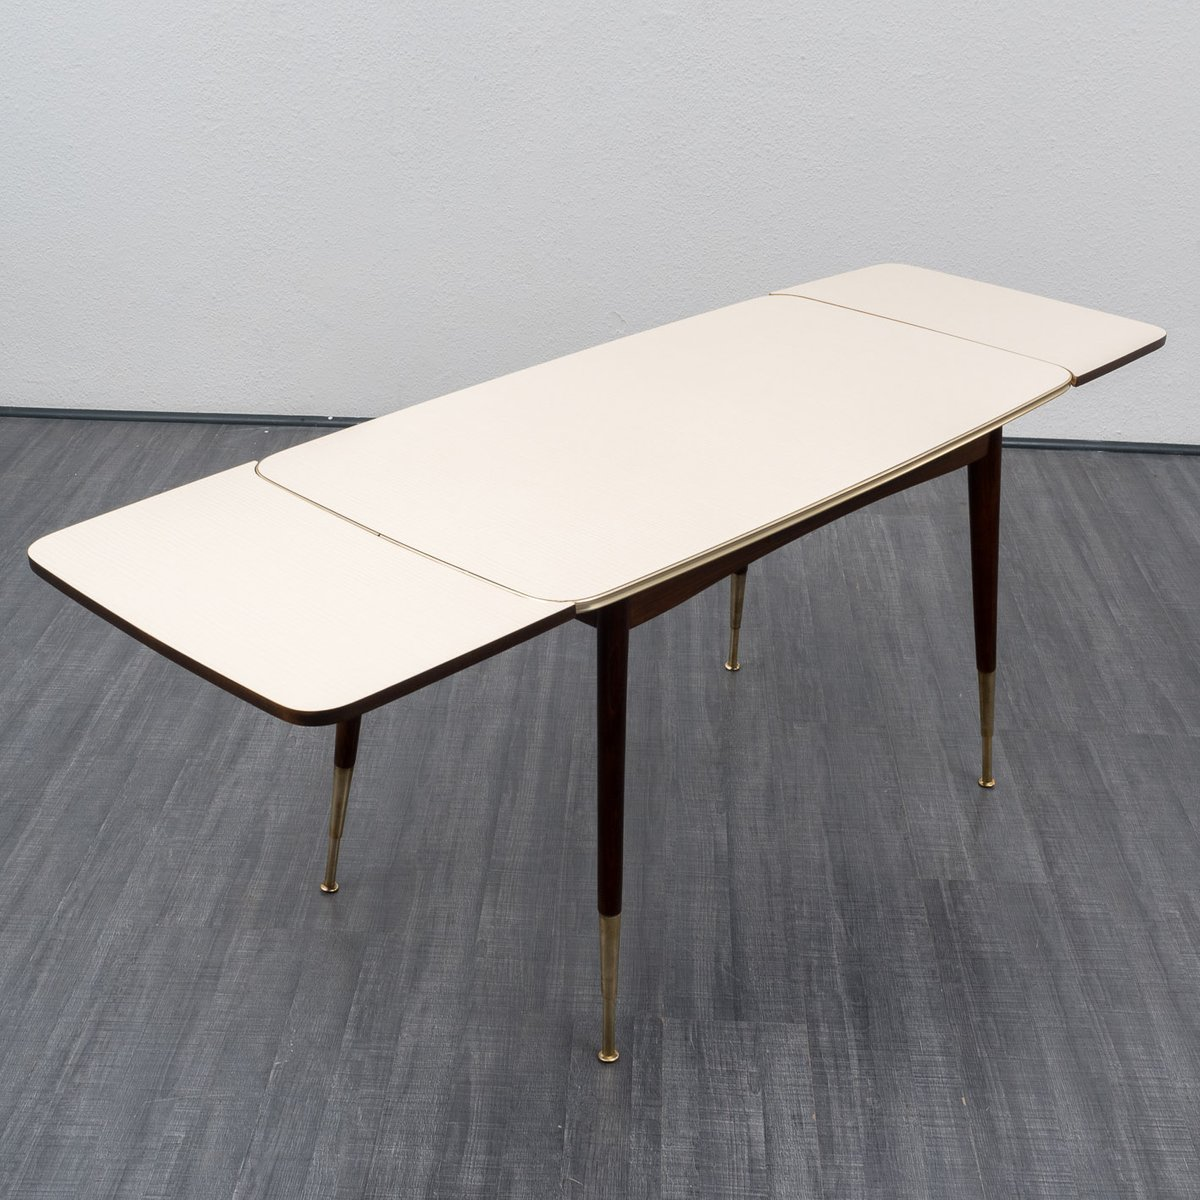 Table de salon hauteur ajustable rallonge 1950s en vente sur pamono - Table salon modulable hauteur ...